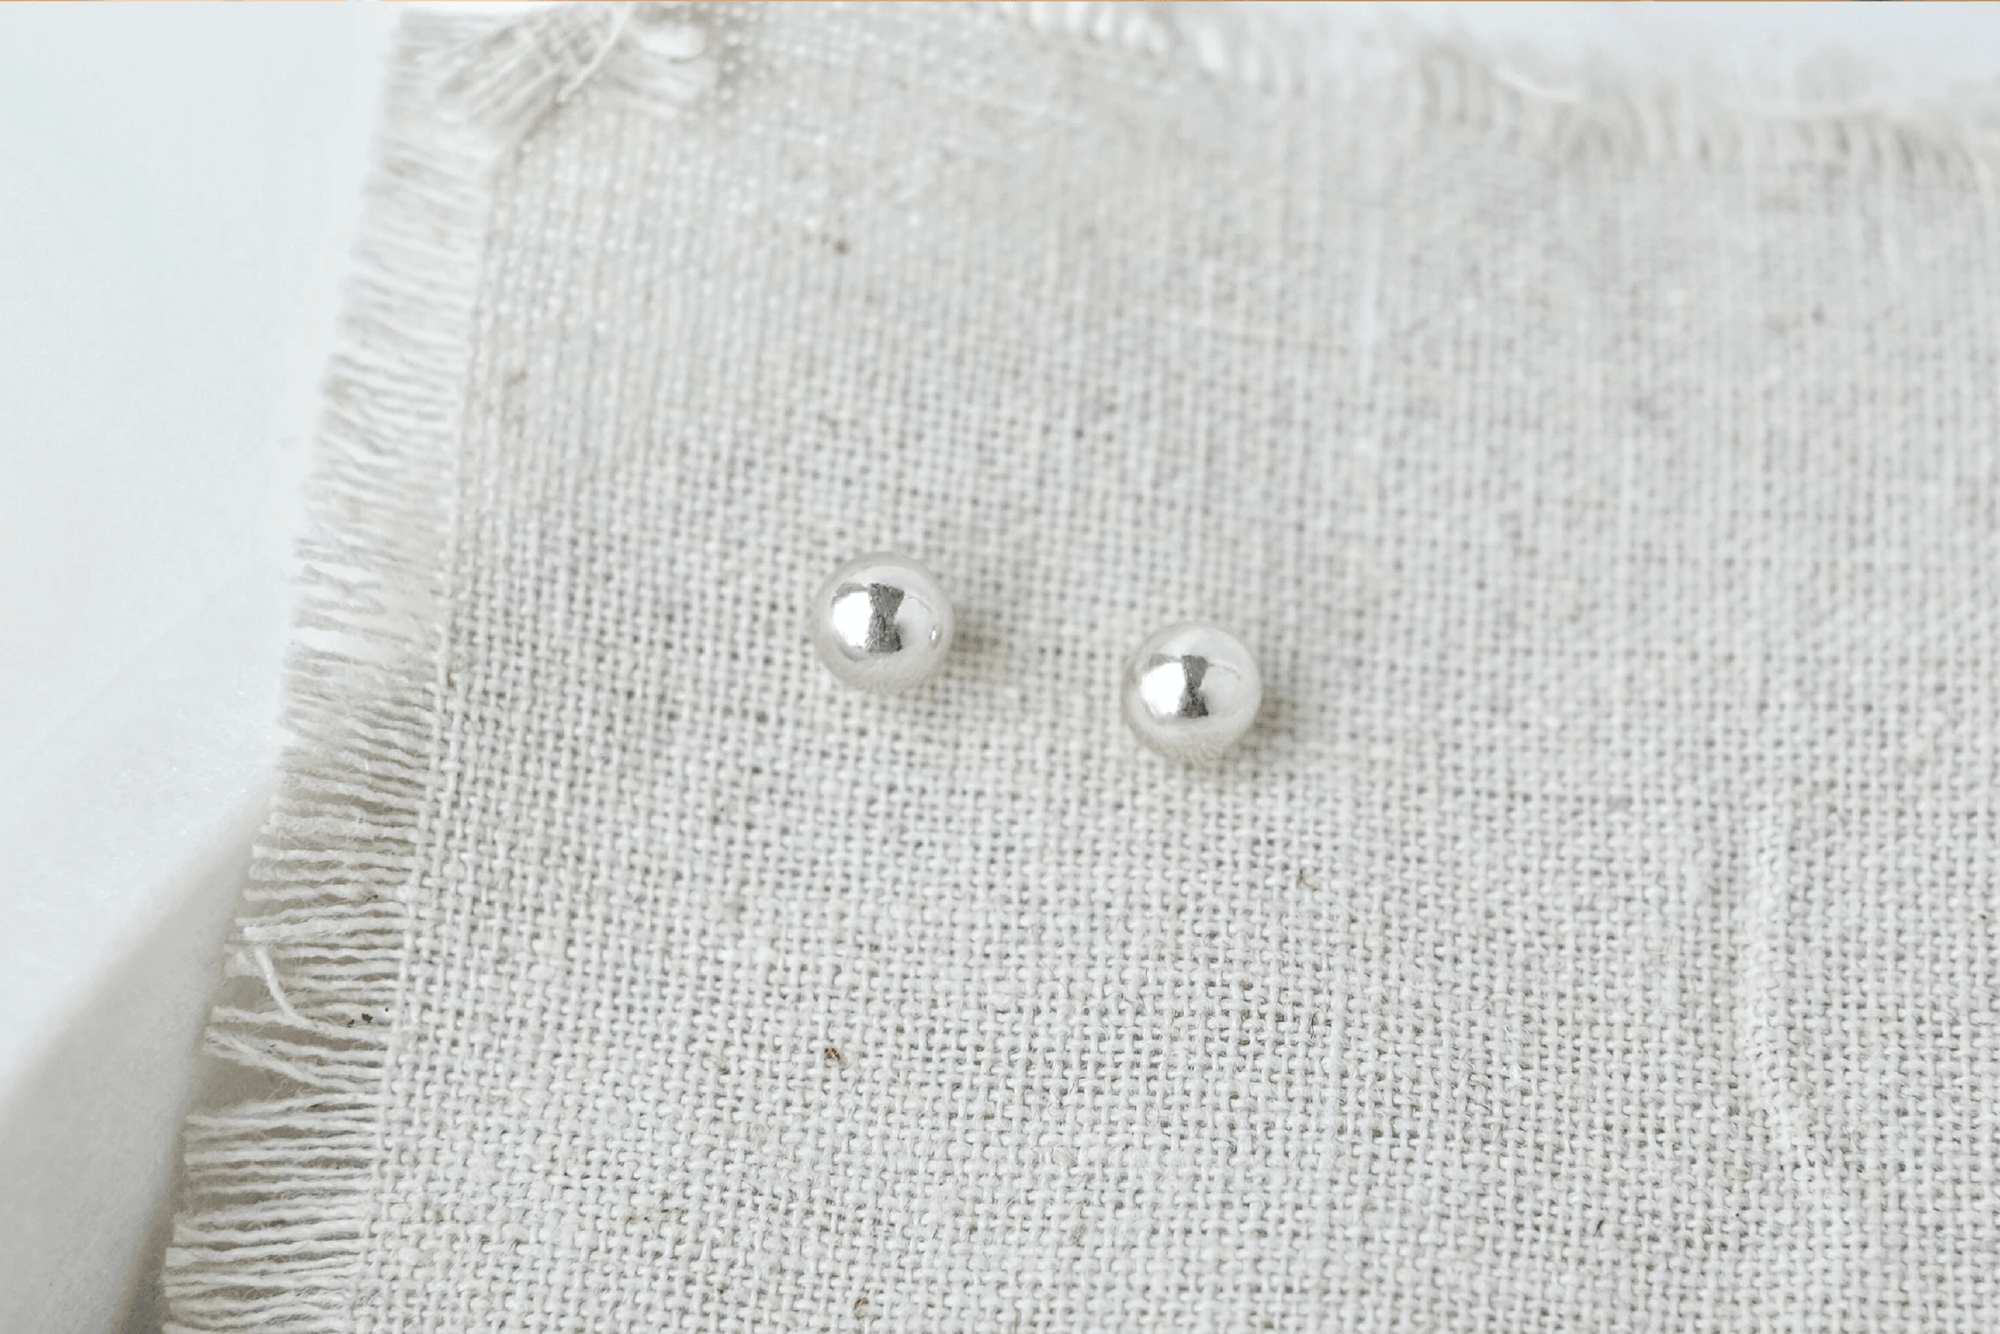 6mm Ball Earrings